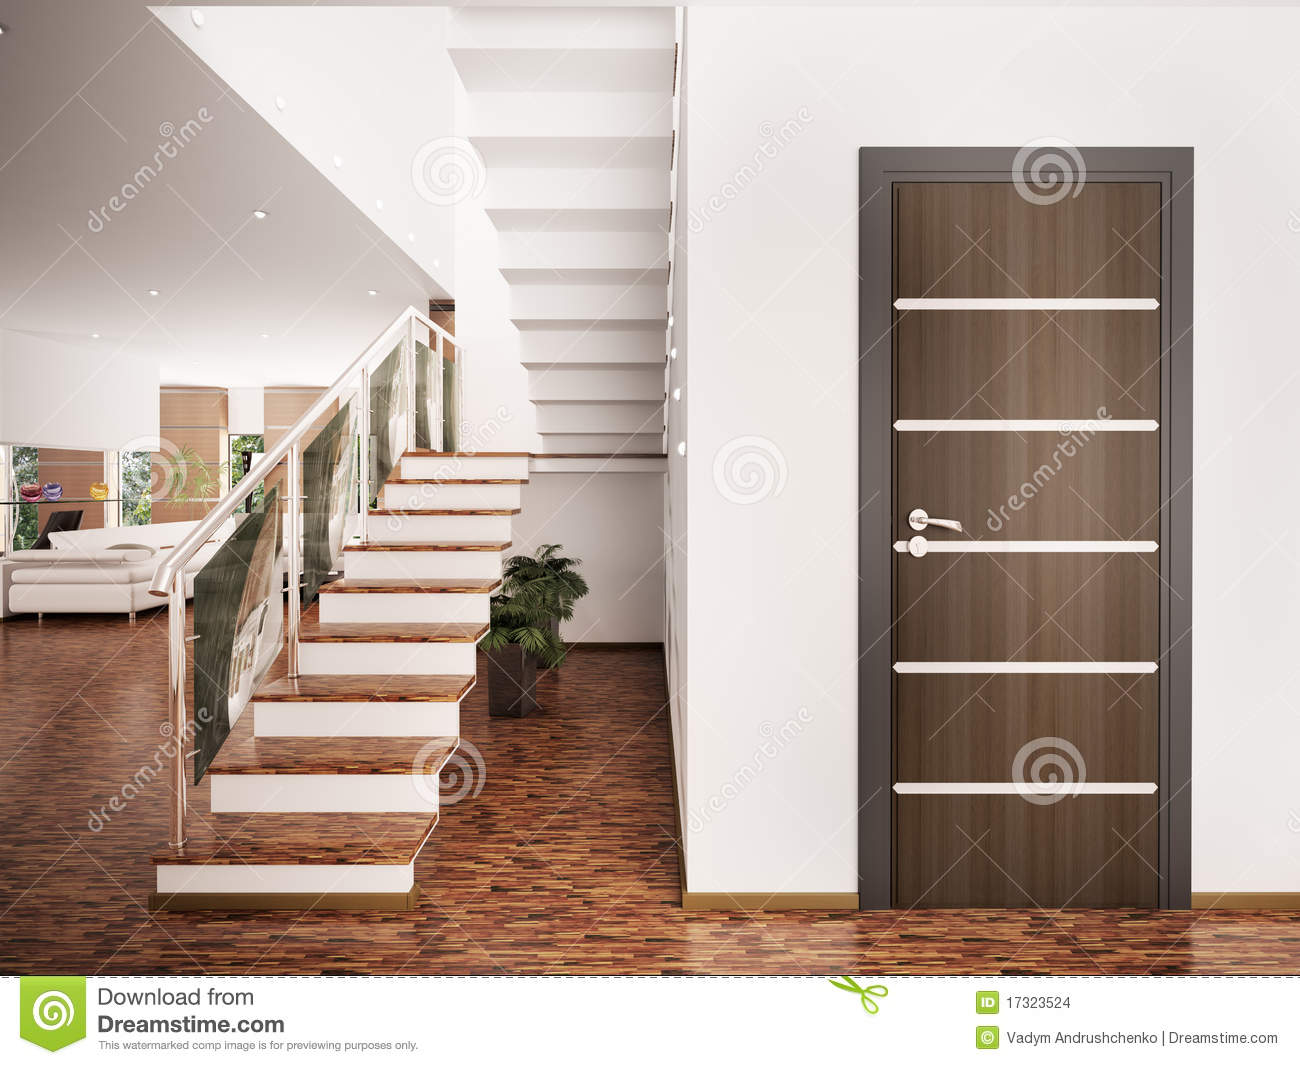 Entrance hall interior 3d render Stock Images. Entrance Hall Interior 3d Render Stock Photography   Image  34265262